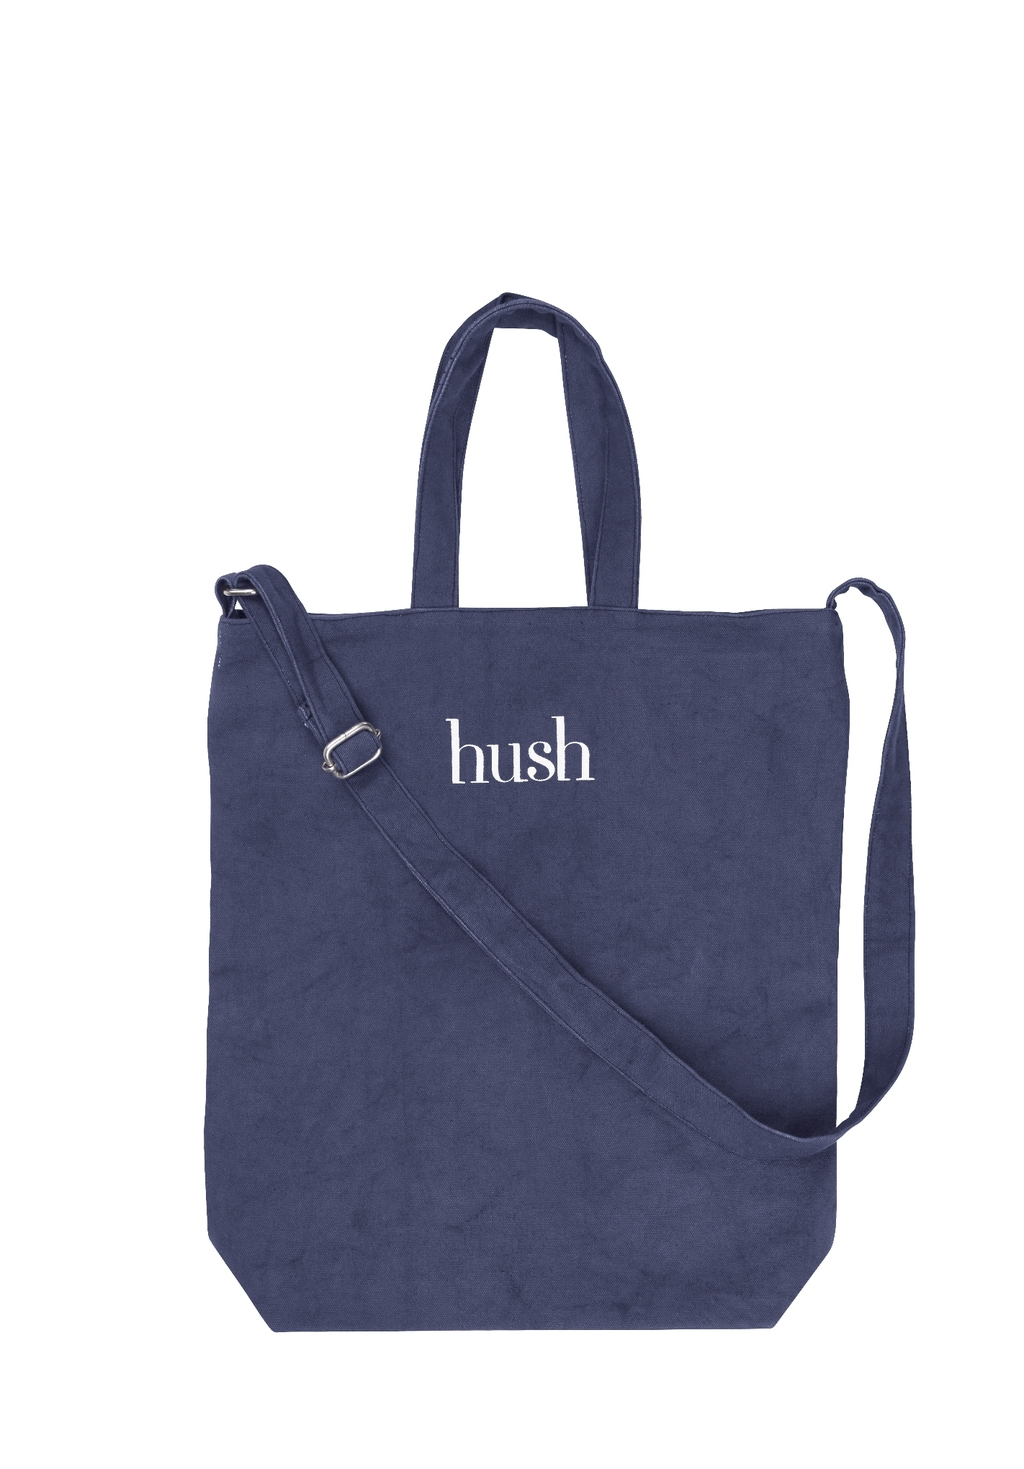 Canvas Shopper - secondary colour: white; predominant colour: navy; occasions: casual; type of pattern: light; style: tote; length: handle; size: standard; material: fabric; finish: plain; pattern: patterned/print; season: s/s 2016; wardrobe: highlight